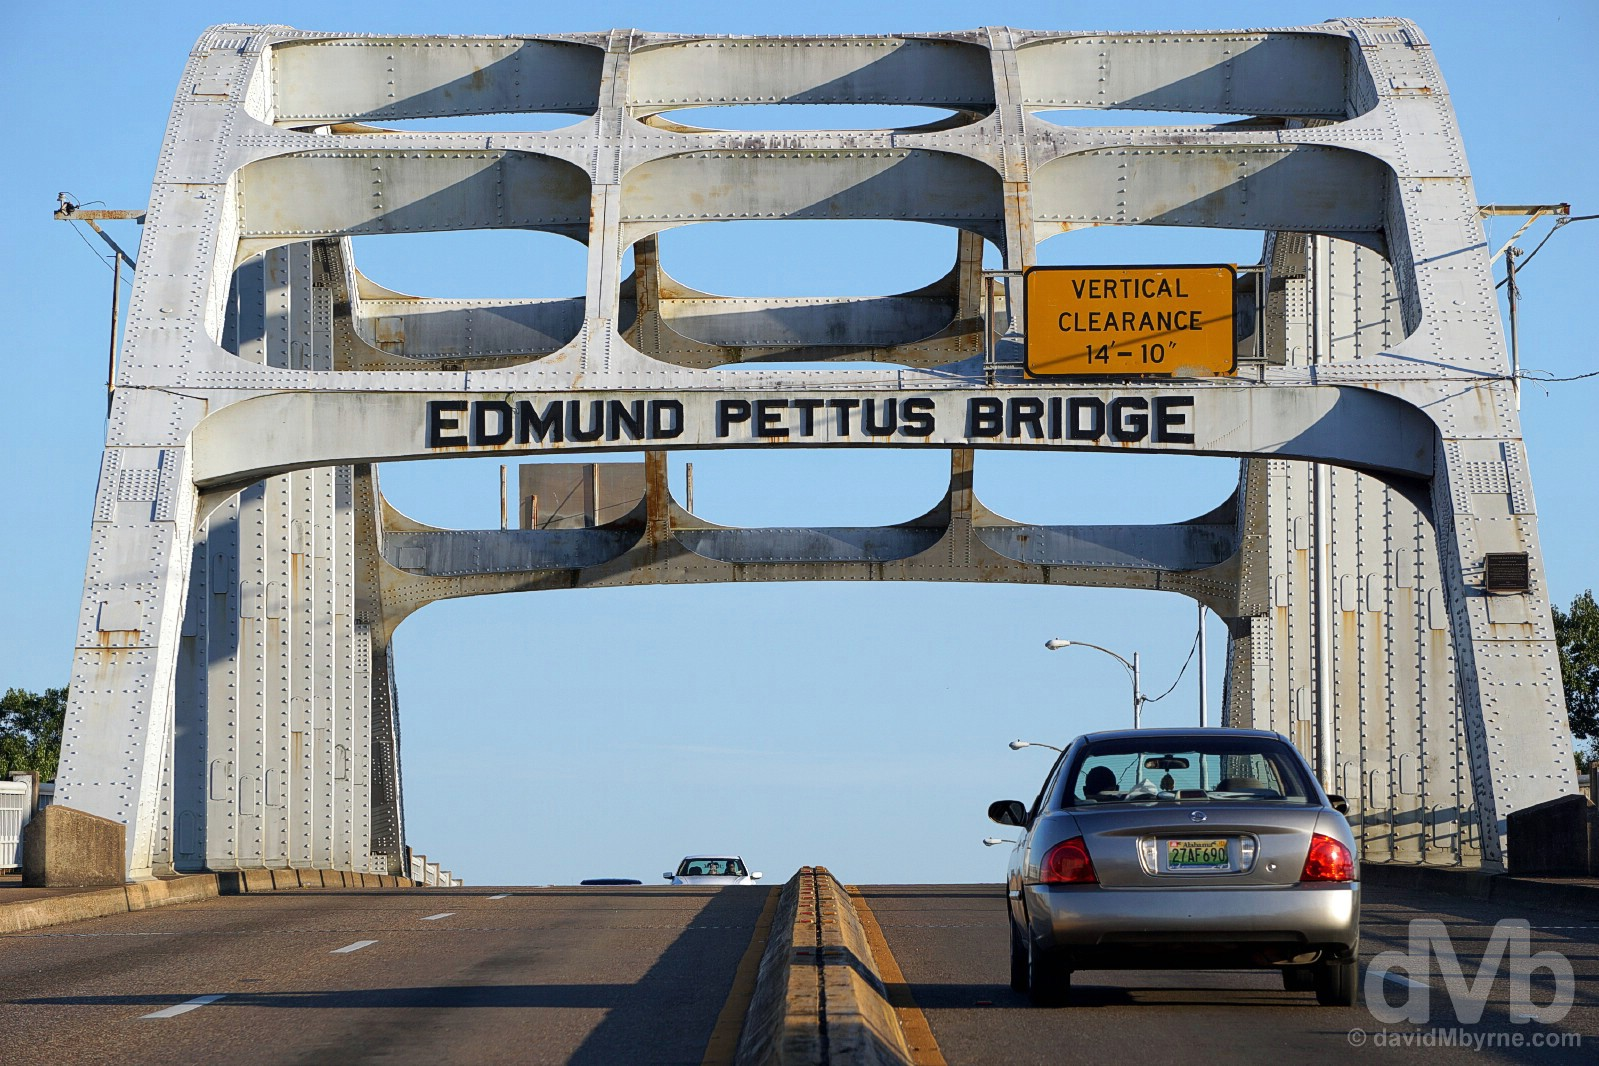 The Edmund Pettus Bridge spanning the Alabama River in Downtown Selma, Alabama, USA. September 20, 2016.